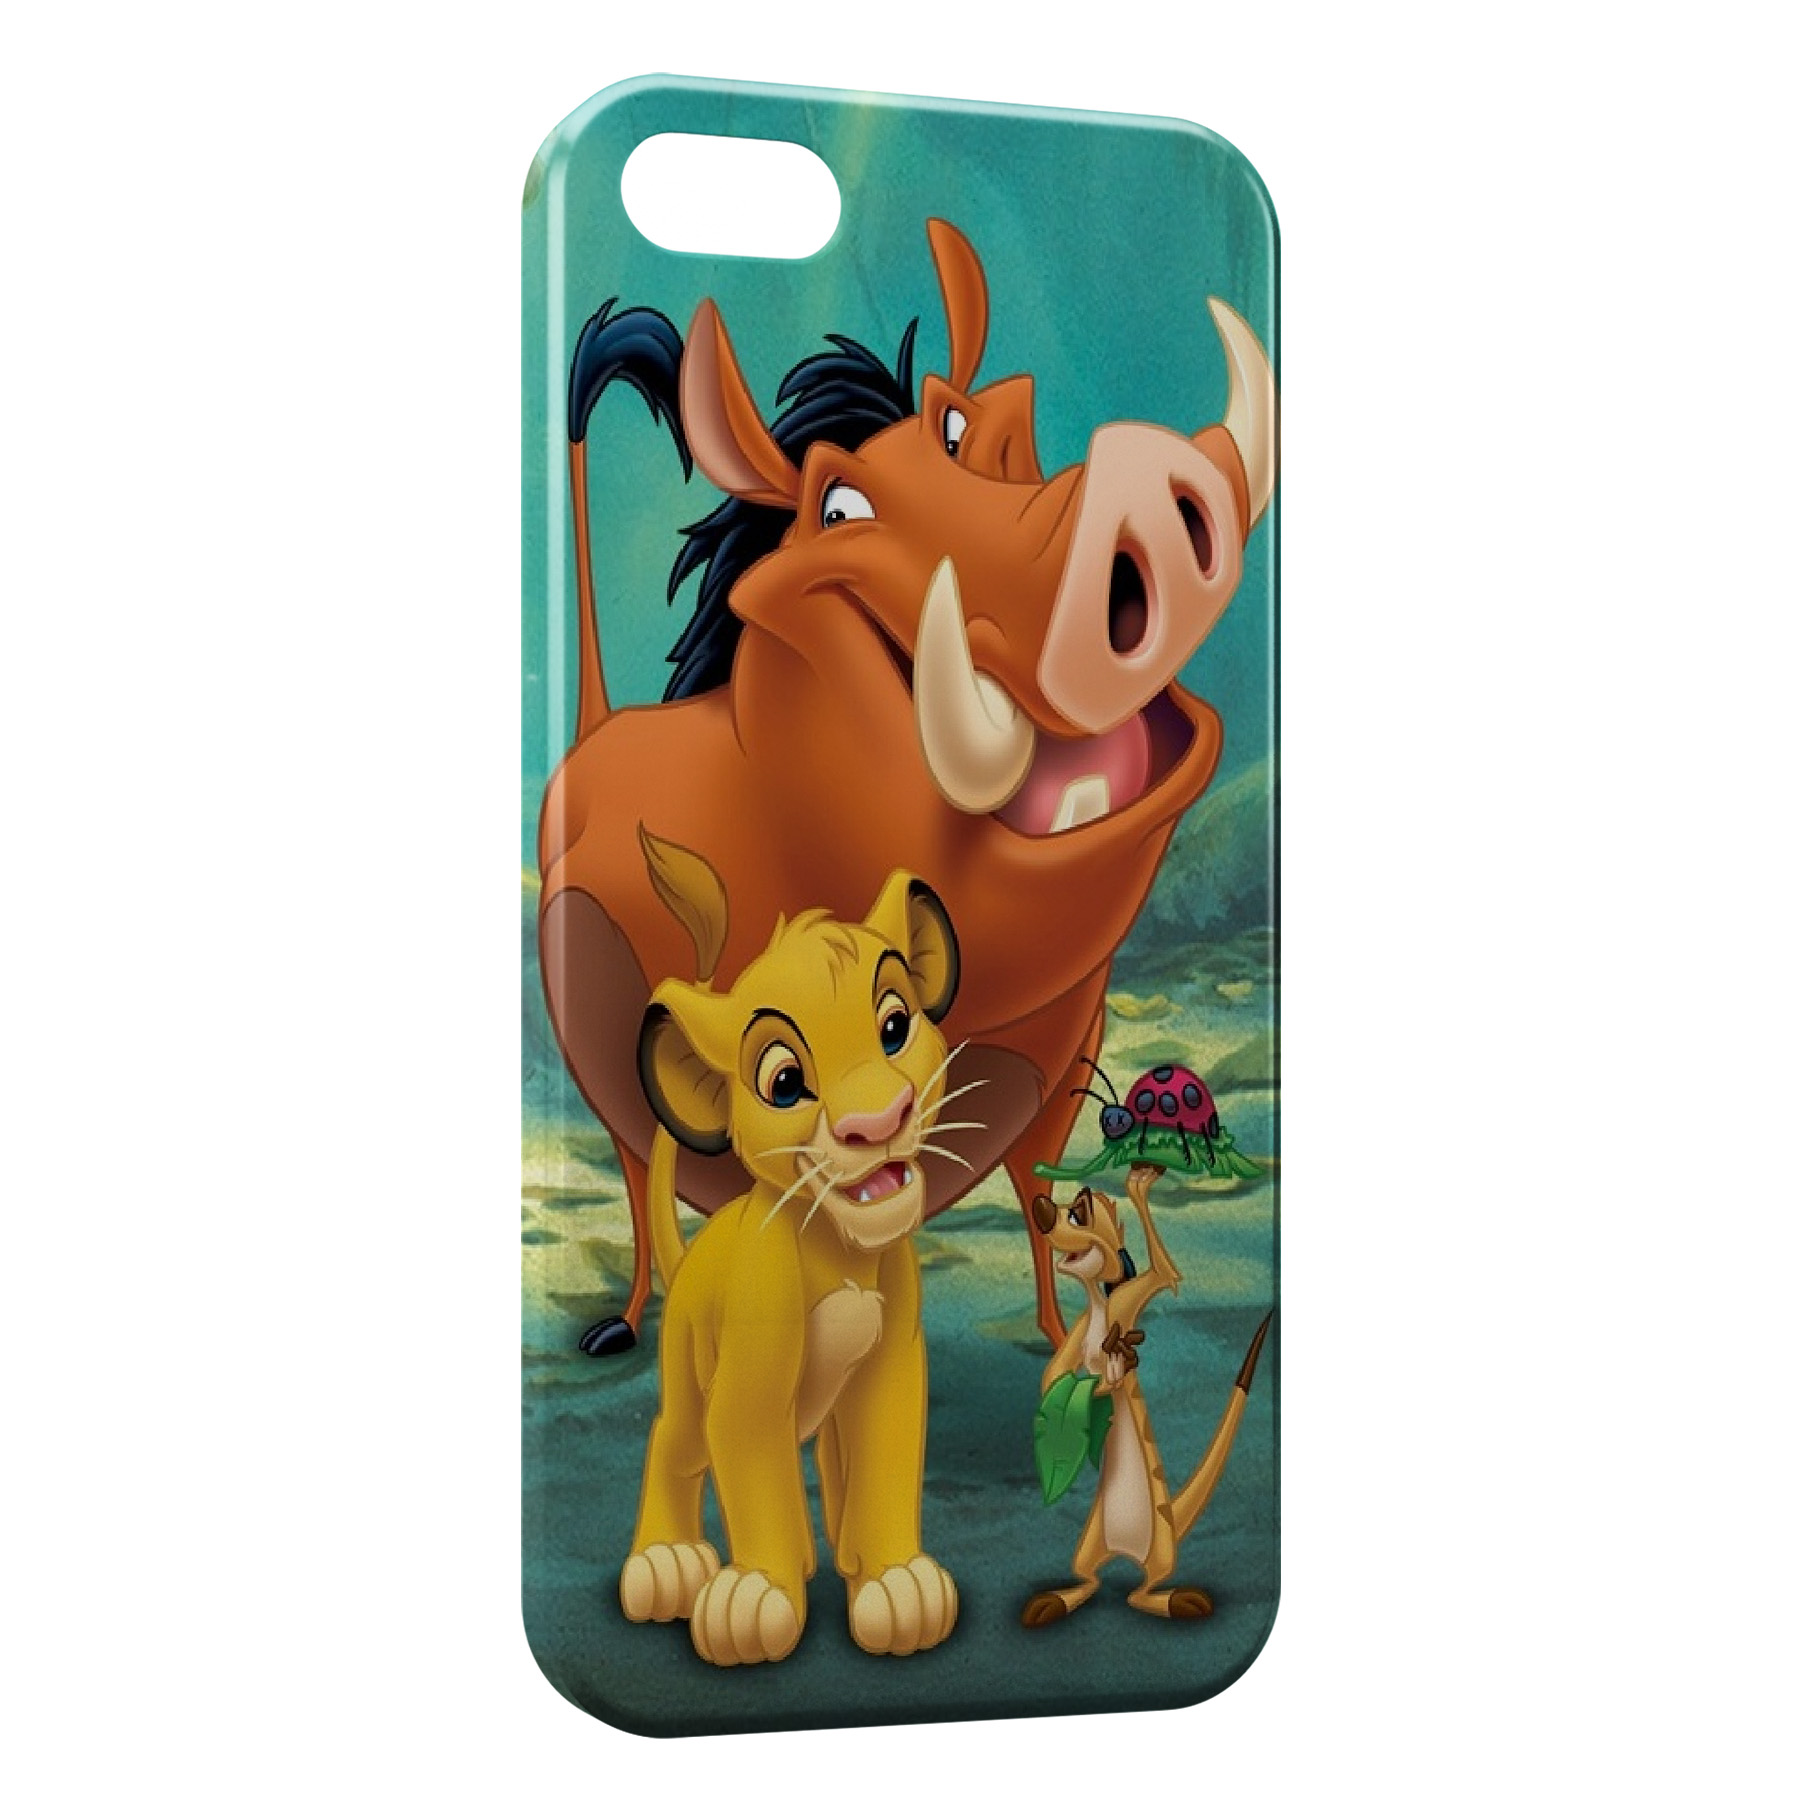 Coque iPhone 7 7 Plus Simba Timon Pumba Le Roi Lion